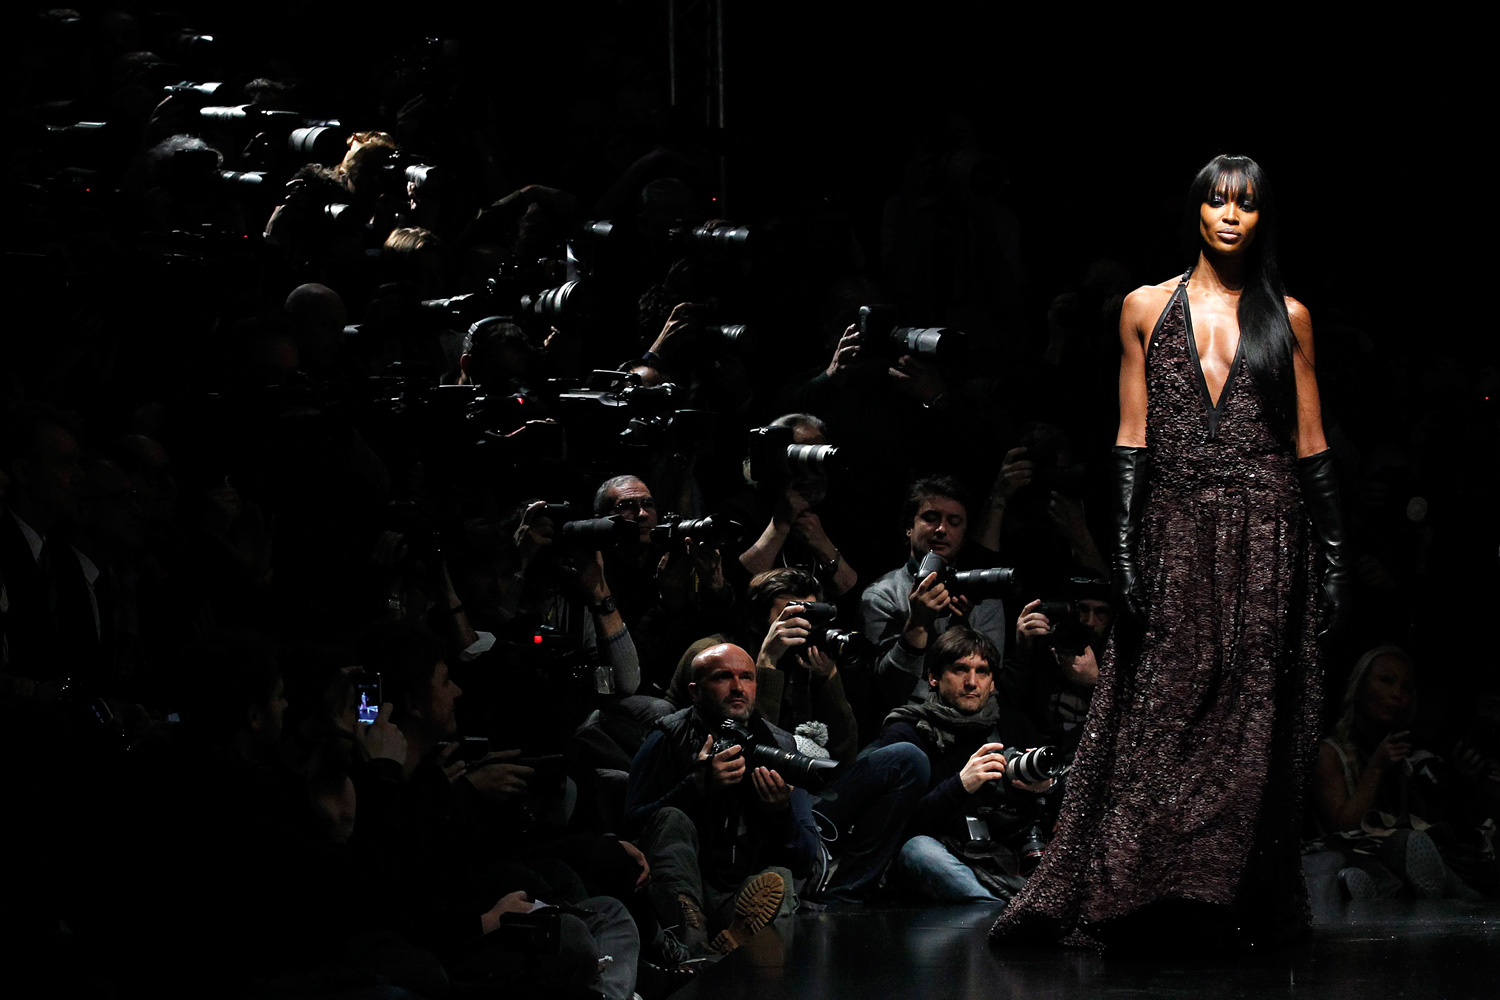 Feb. 27, 2012. Supermodel Naomi Campbell presents a creation from Roberto Cavalli 2012 Autumn/Winter collection during Milan Fashion Week in Milan.